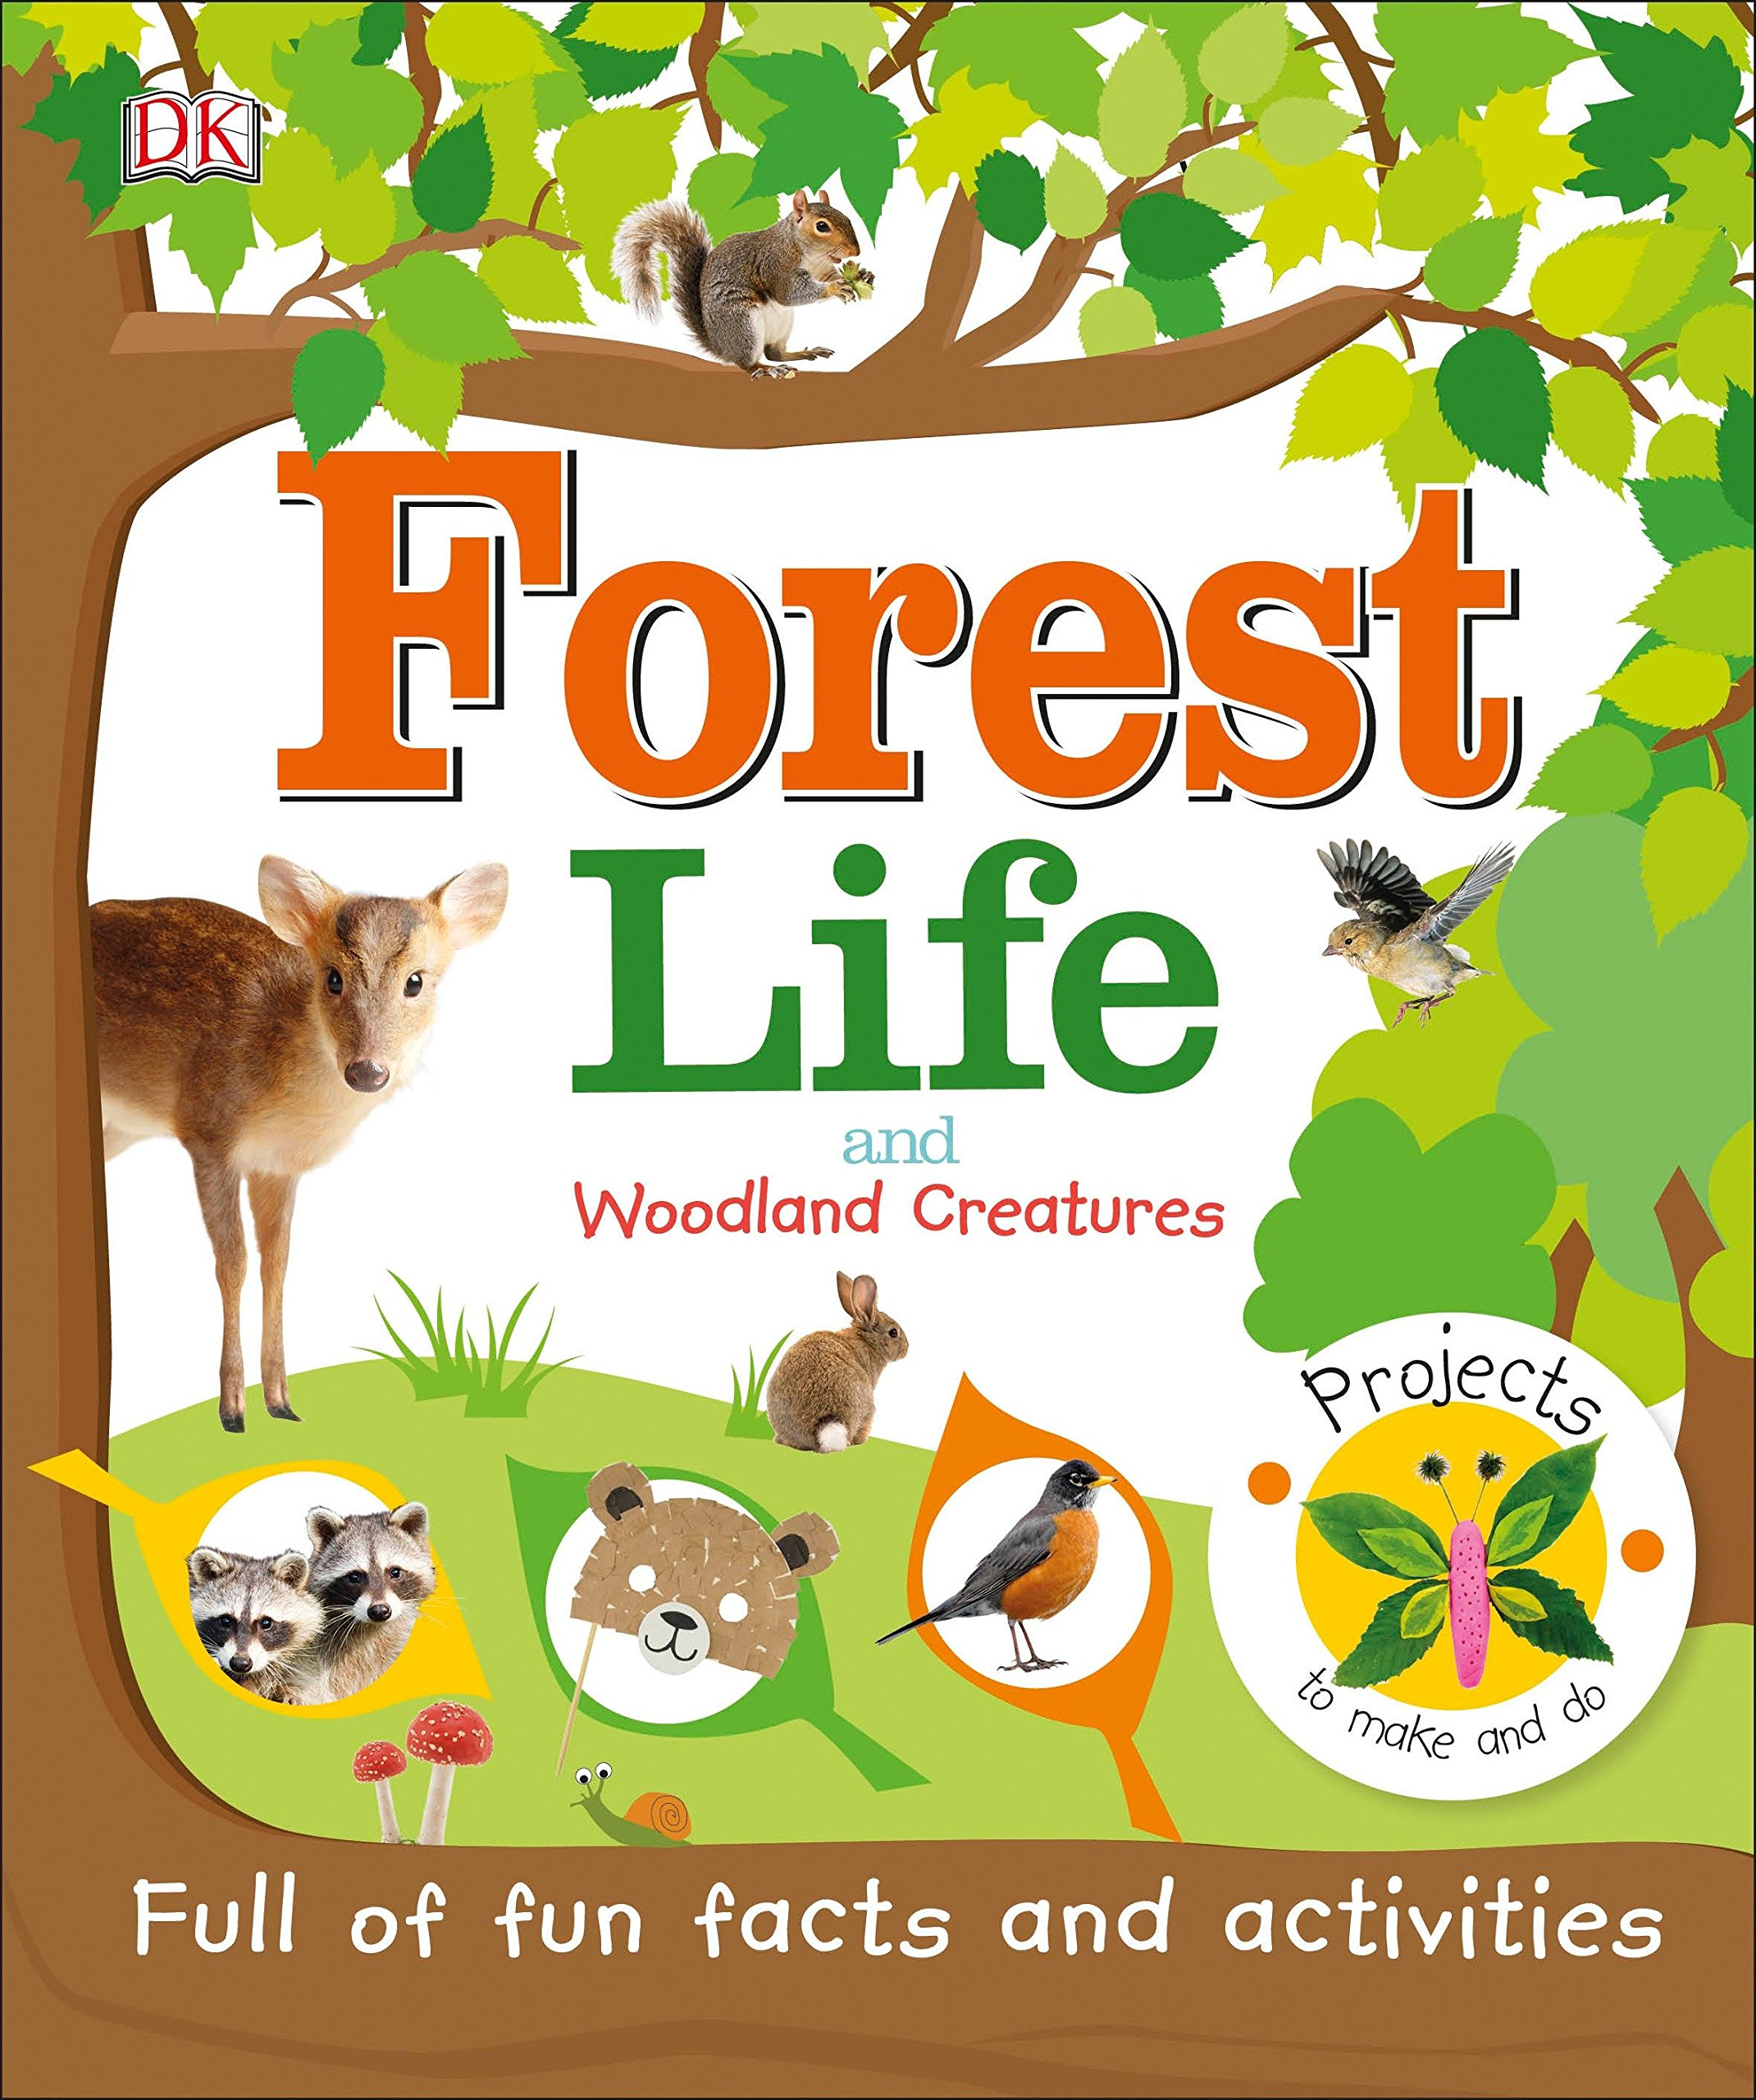 Read Online Forest Life and Woodland Creatures Text fb2 book